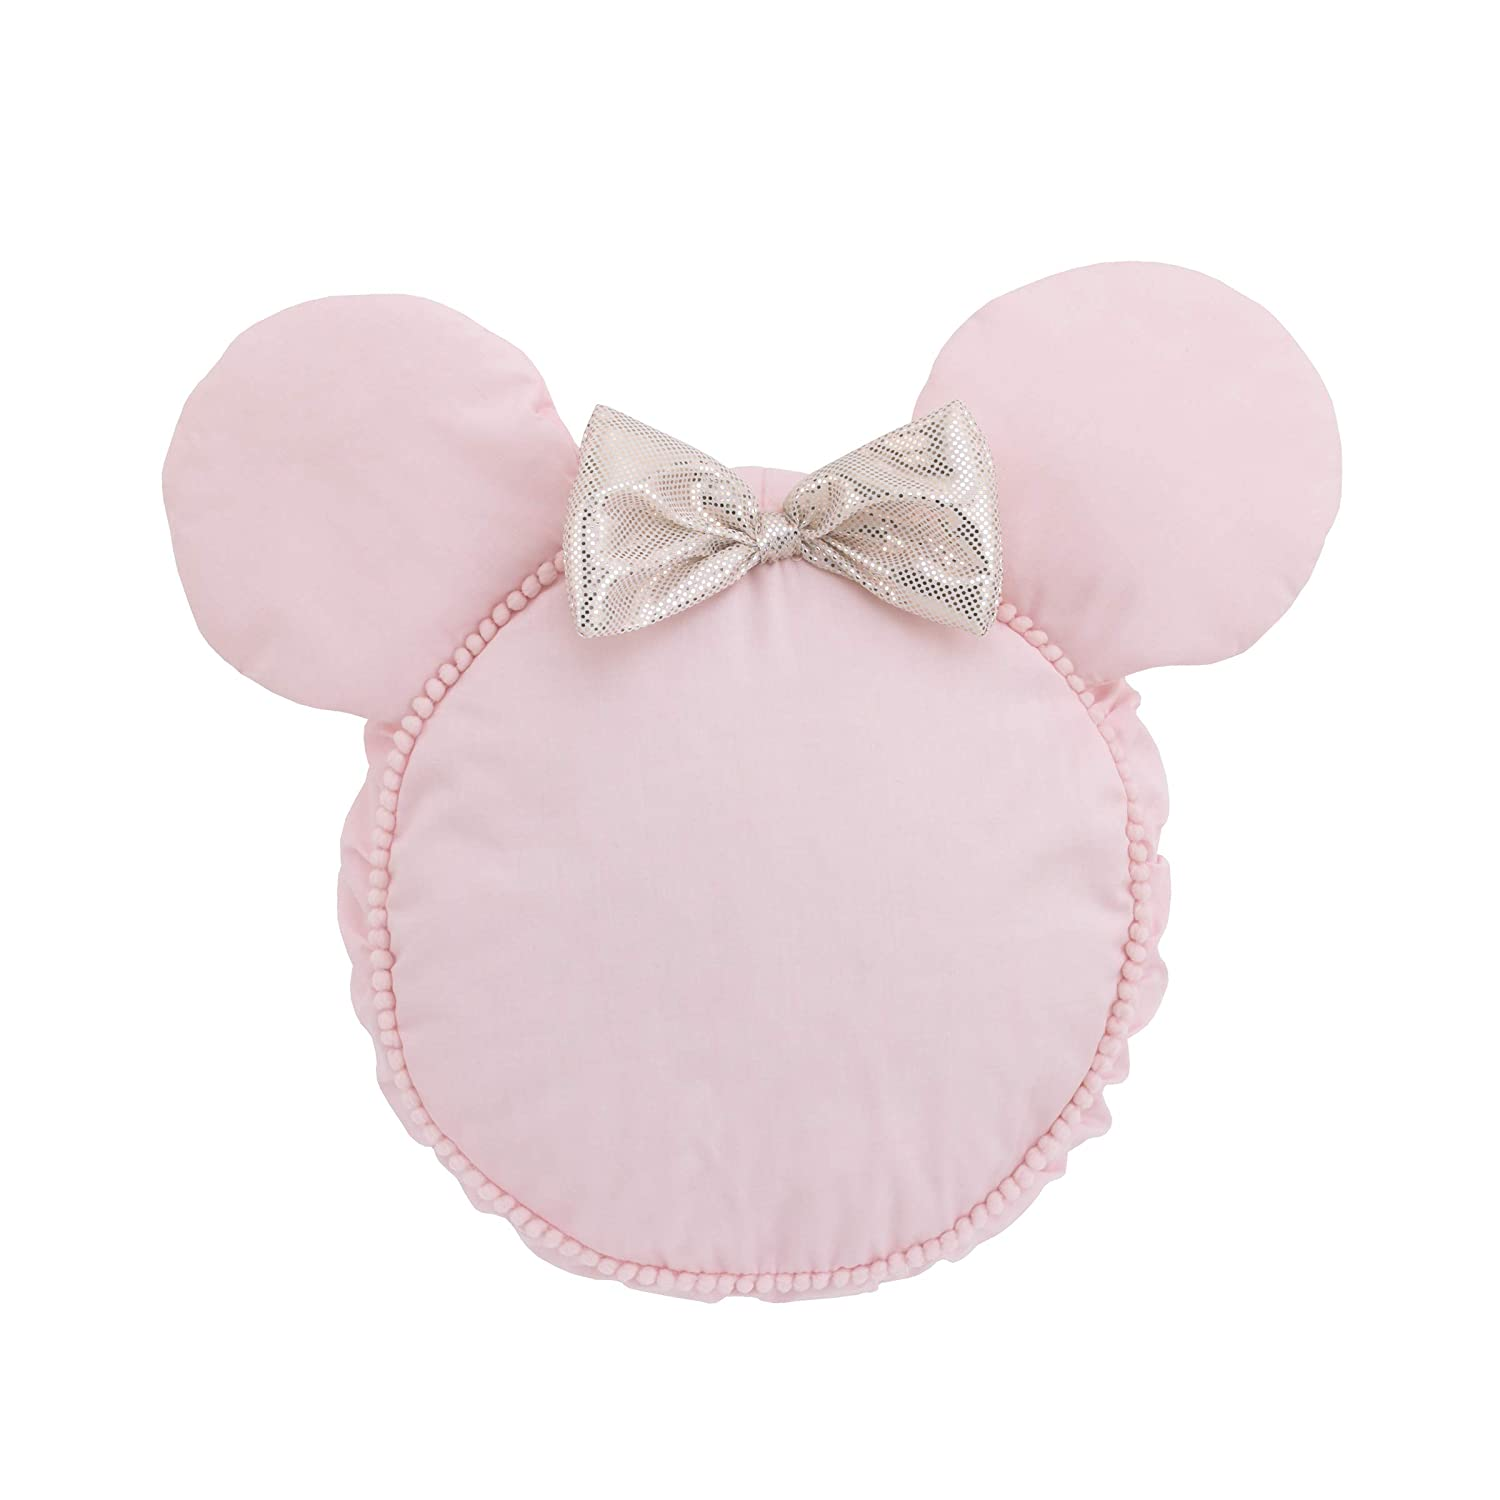 Disney Minnie Mouse Decorative Shaped Pillow with Dimensional Ears & Bow, Pink/Metallic Gold